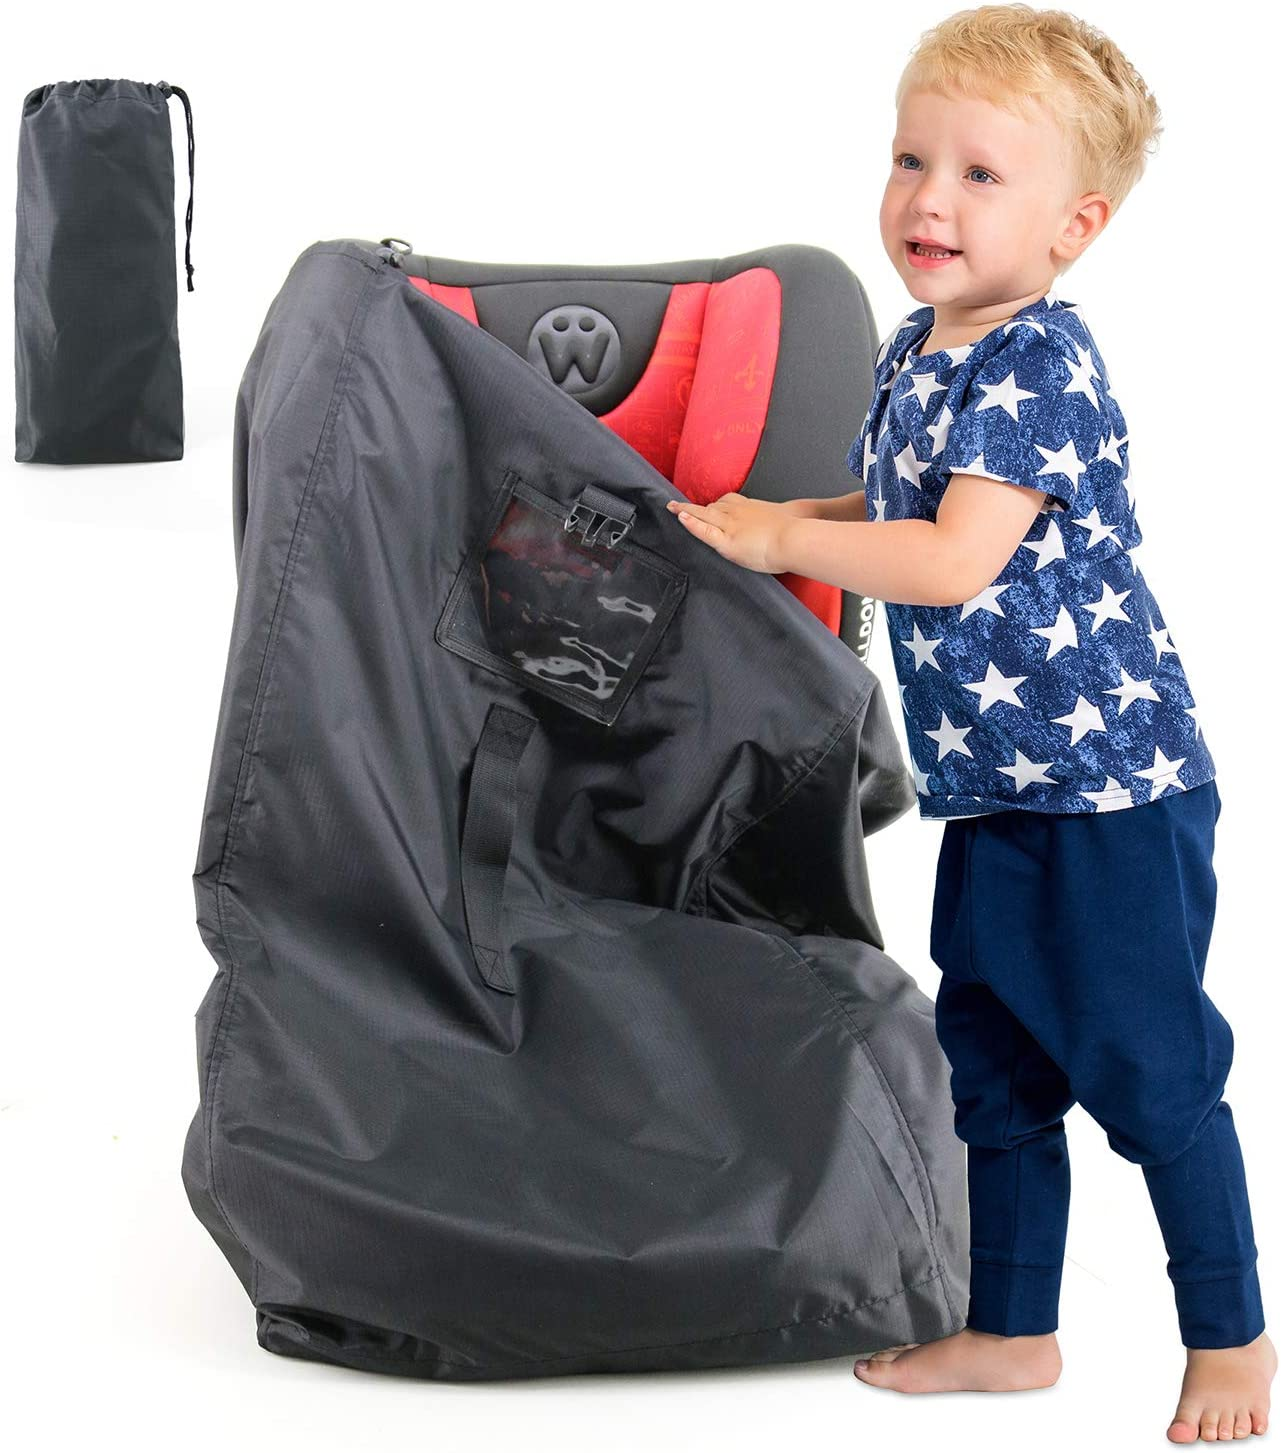 Car-Seat-Travel-Bag for Air Travel and Gate Check Car Seat Carry Bag Fits in Stroller Infant Carriers /& Toddler Sturdy Lightweight Waterproof Make Traveling Easier